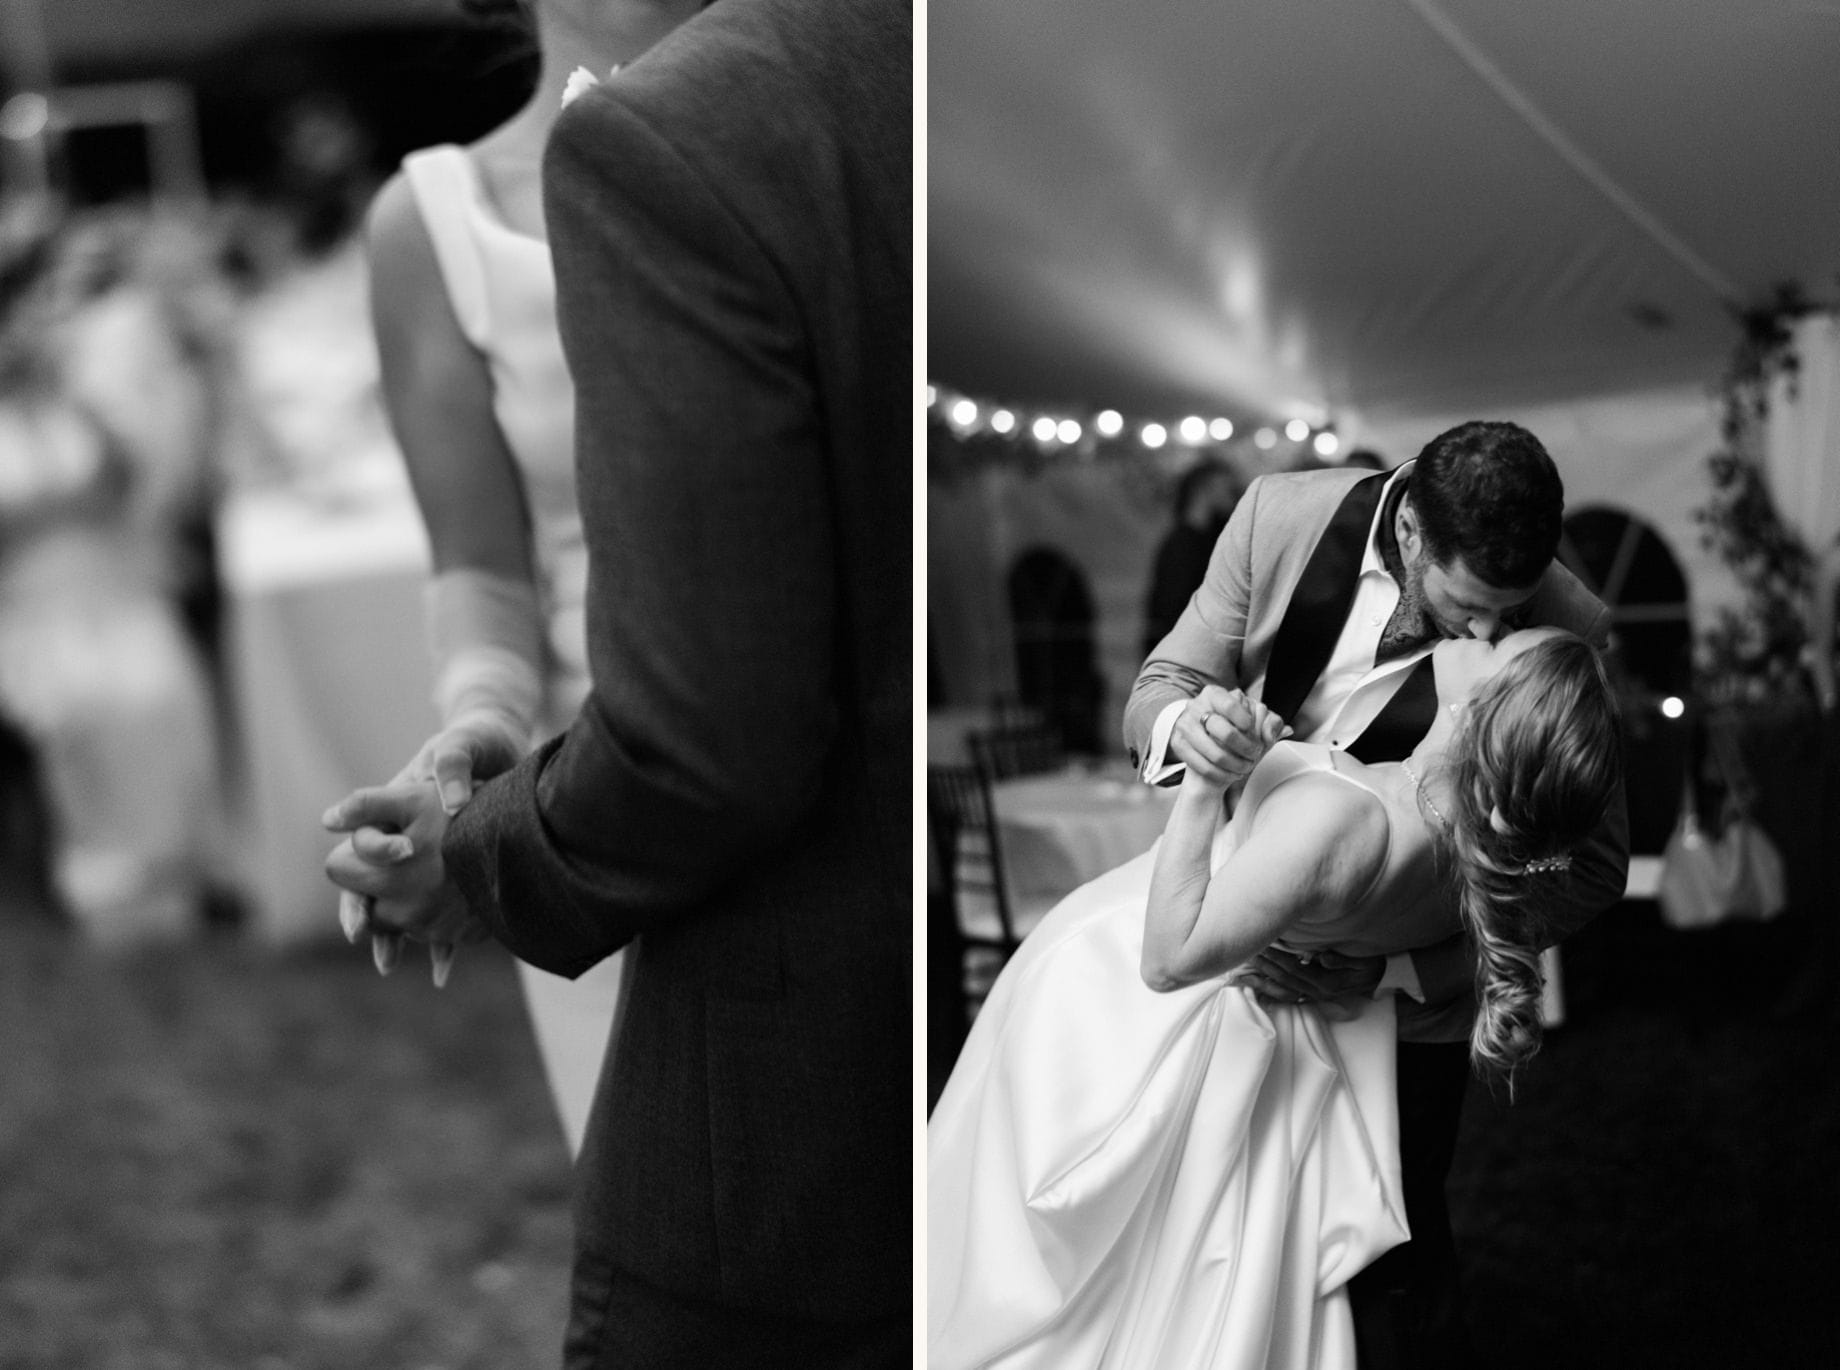 black and white photographs of couples dancing on their wedding day